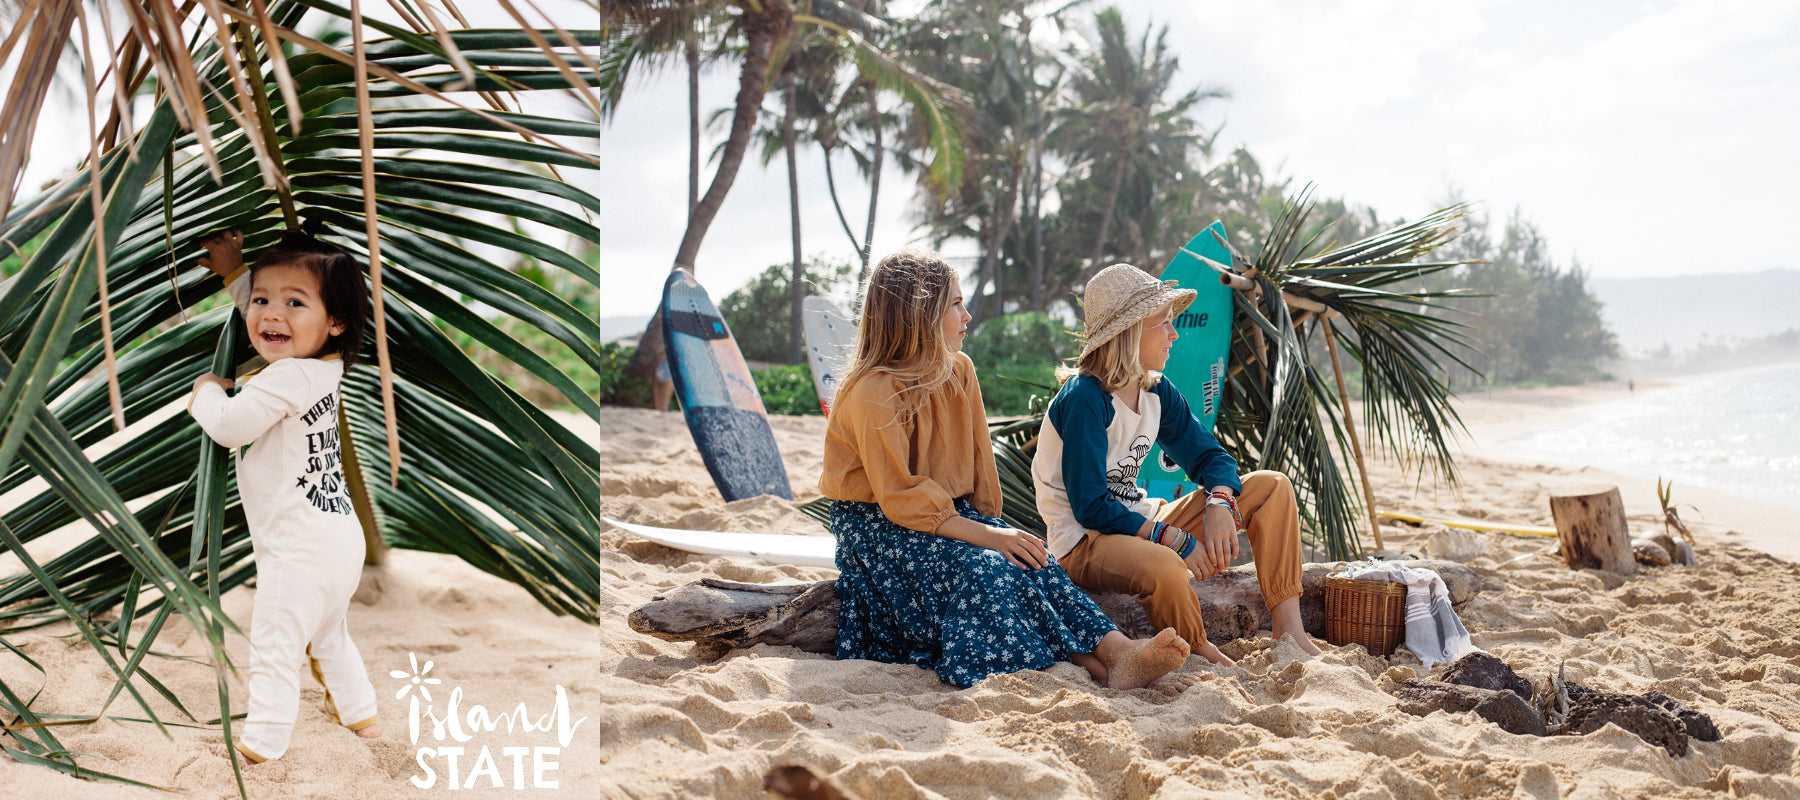 Island State Co is Australia's first eco surf brand for kids, inspired by peace and a long-term respect surfers have had for our planet. We hope to become known for our love and positivity, and our adoration of a laid-back surf life.  We design organic an